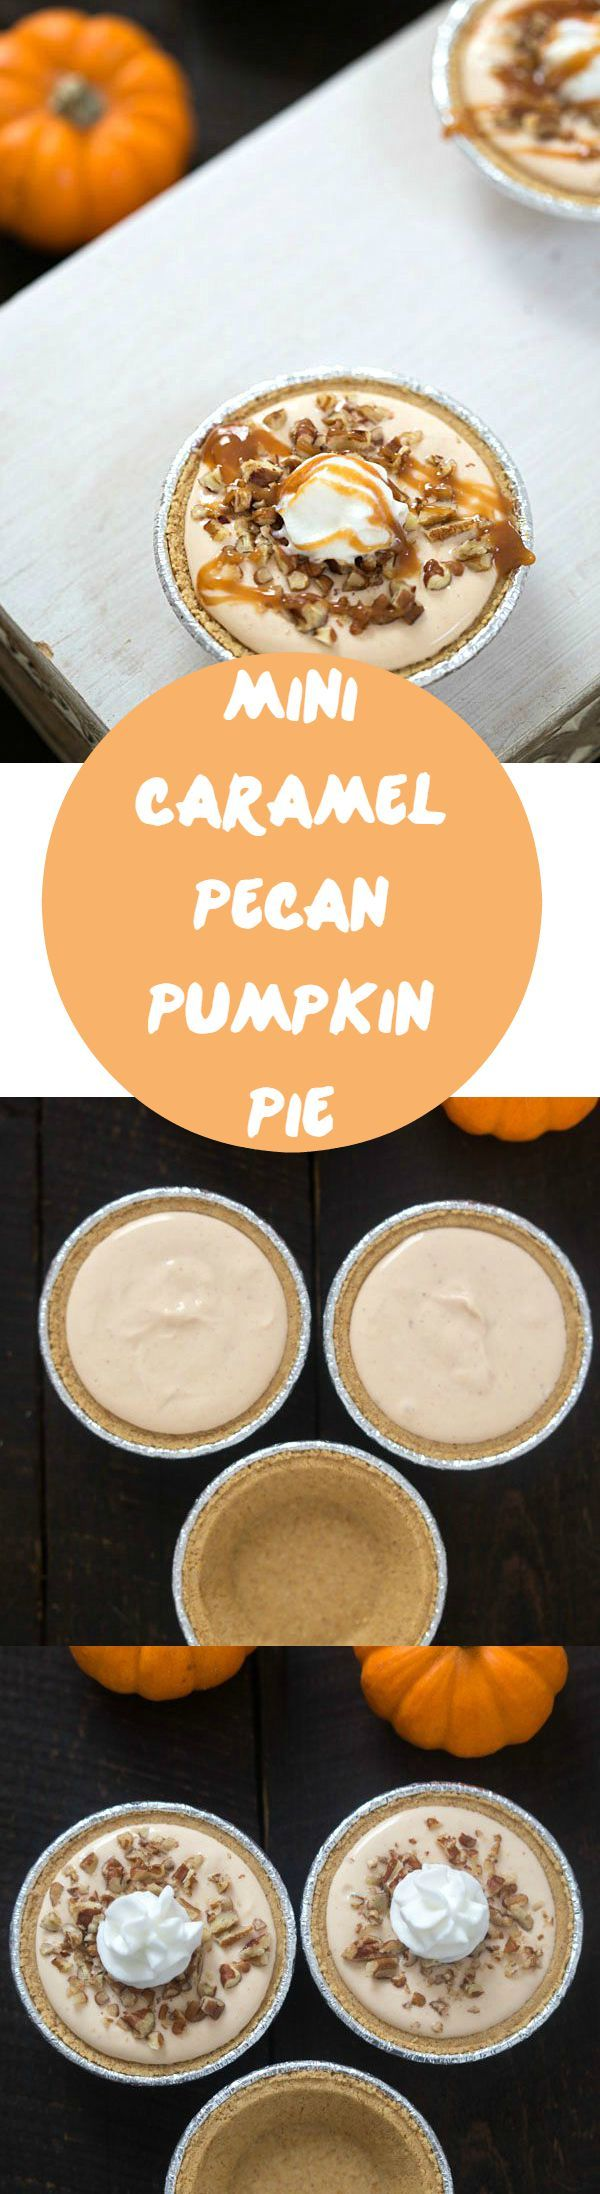 Mini Caramel Pecan Pumpkin Pie - Incredibly easy no-bake dessert made with only five ingredients! #ad #EffortlessPies @realreddiwip @dannonoikos